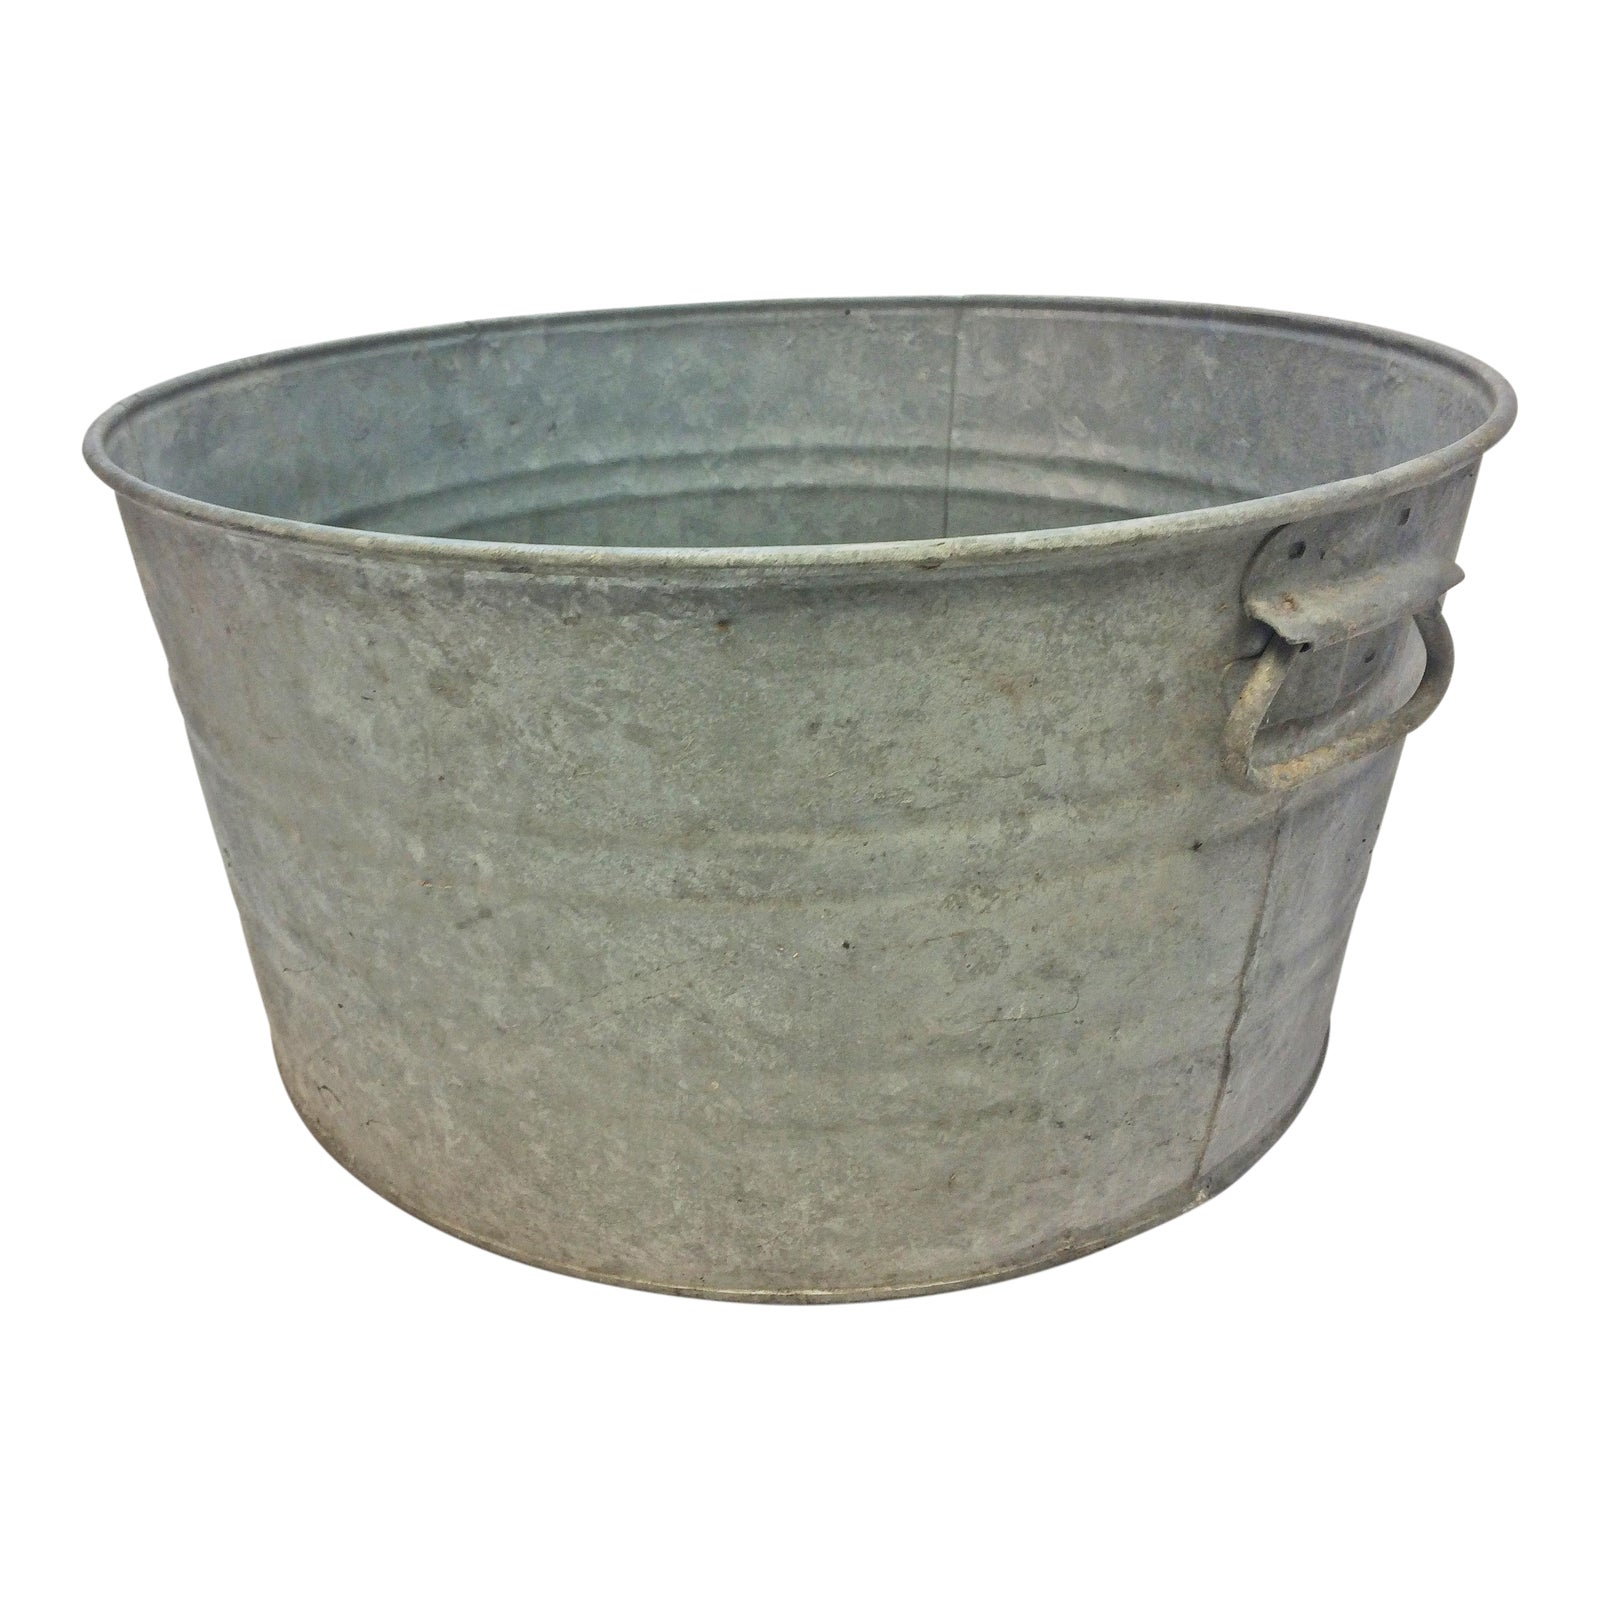 Vintage Country Galvanized Round Metal Wash Tub Chairish